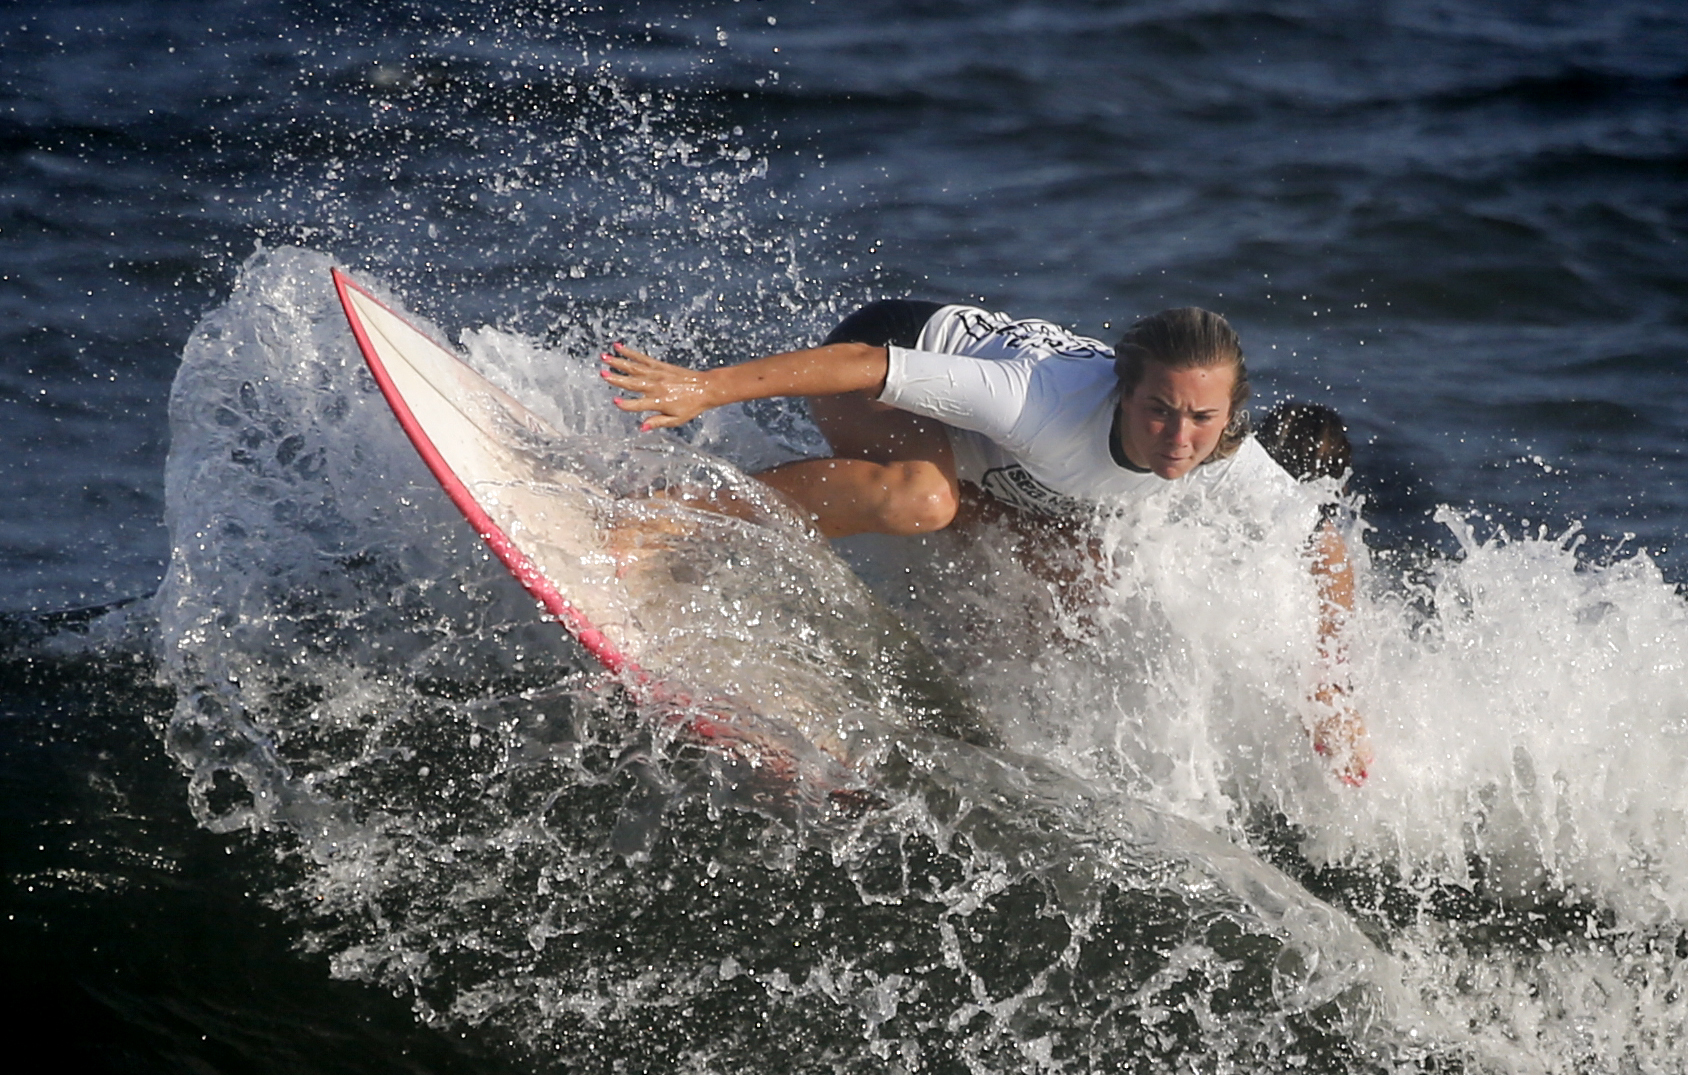 N.J. high school surfing has a new dynasty. This team just won its 6th straight championship.